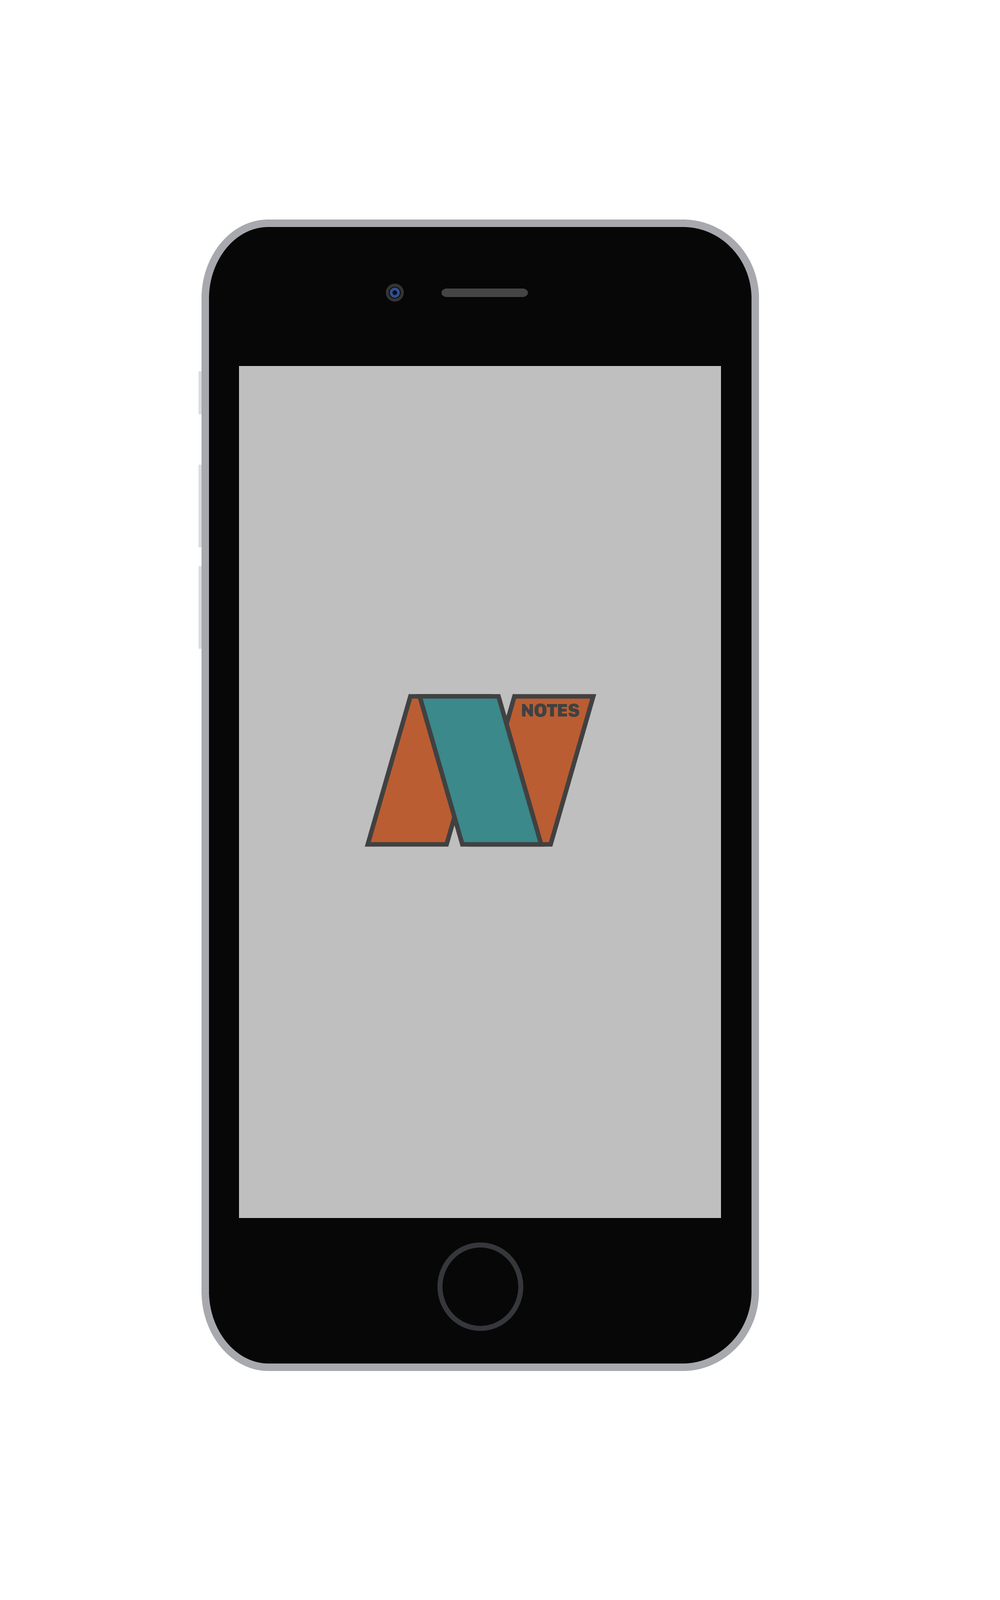 iPhone Mock-Up-01.jpg